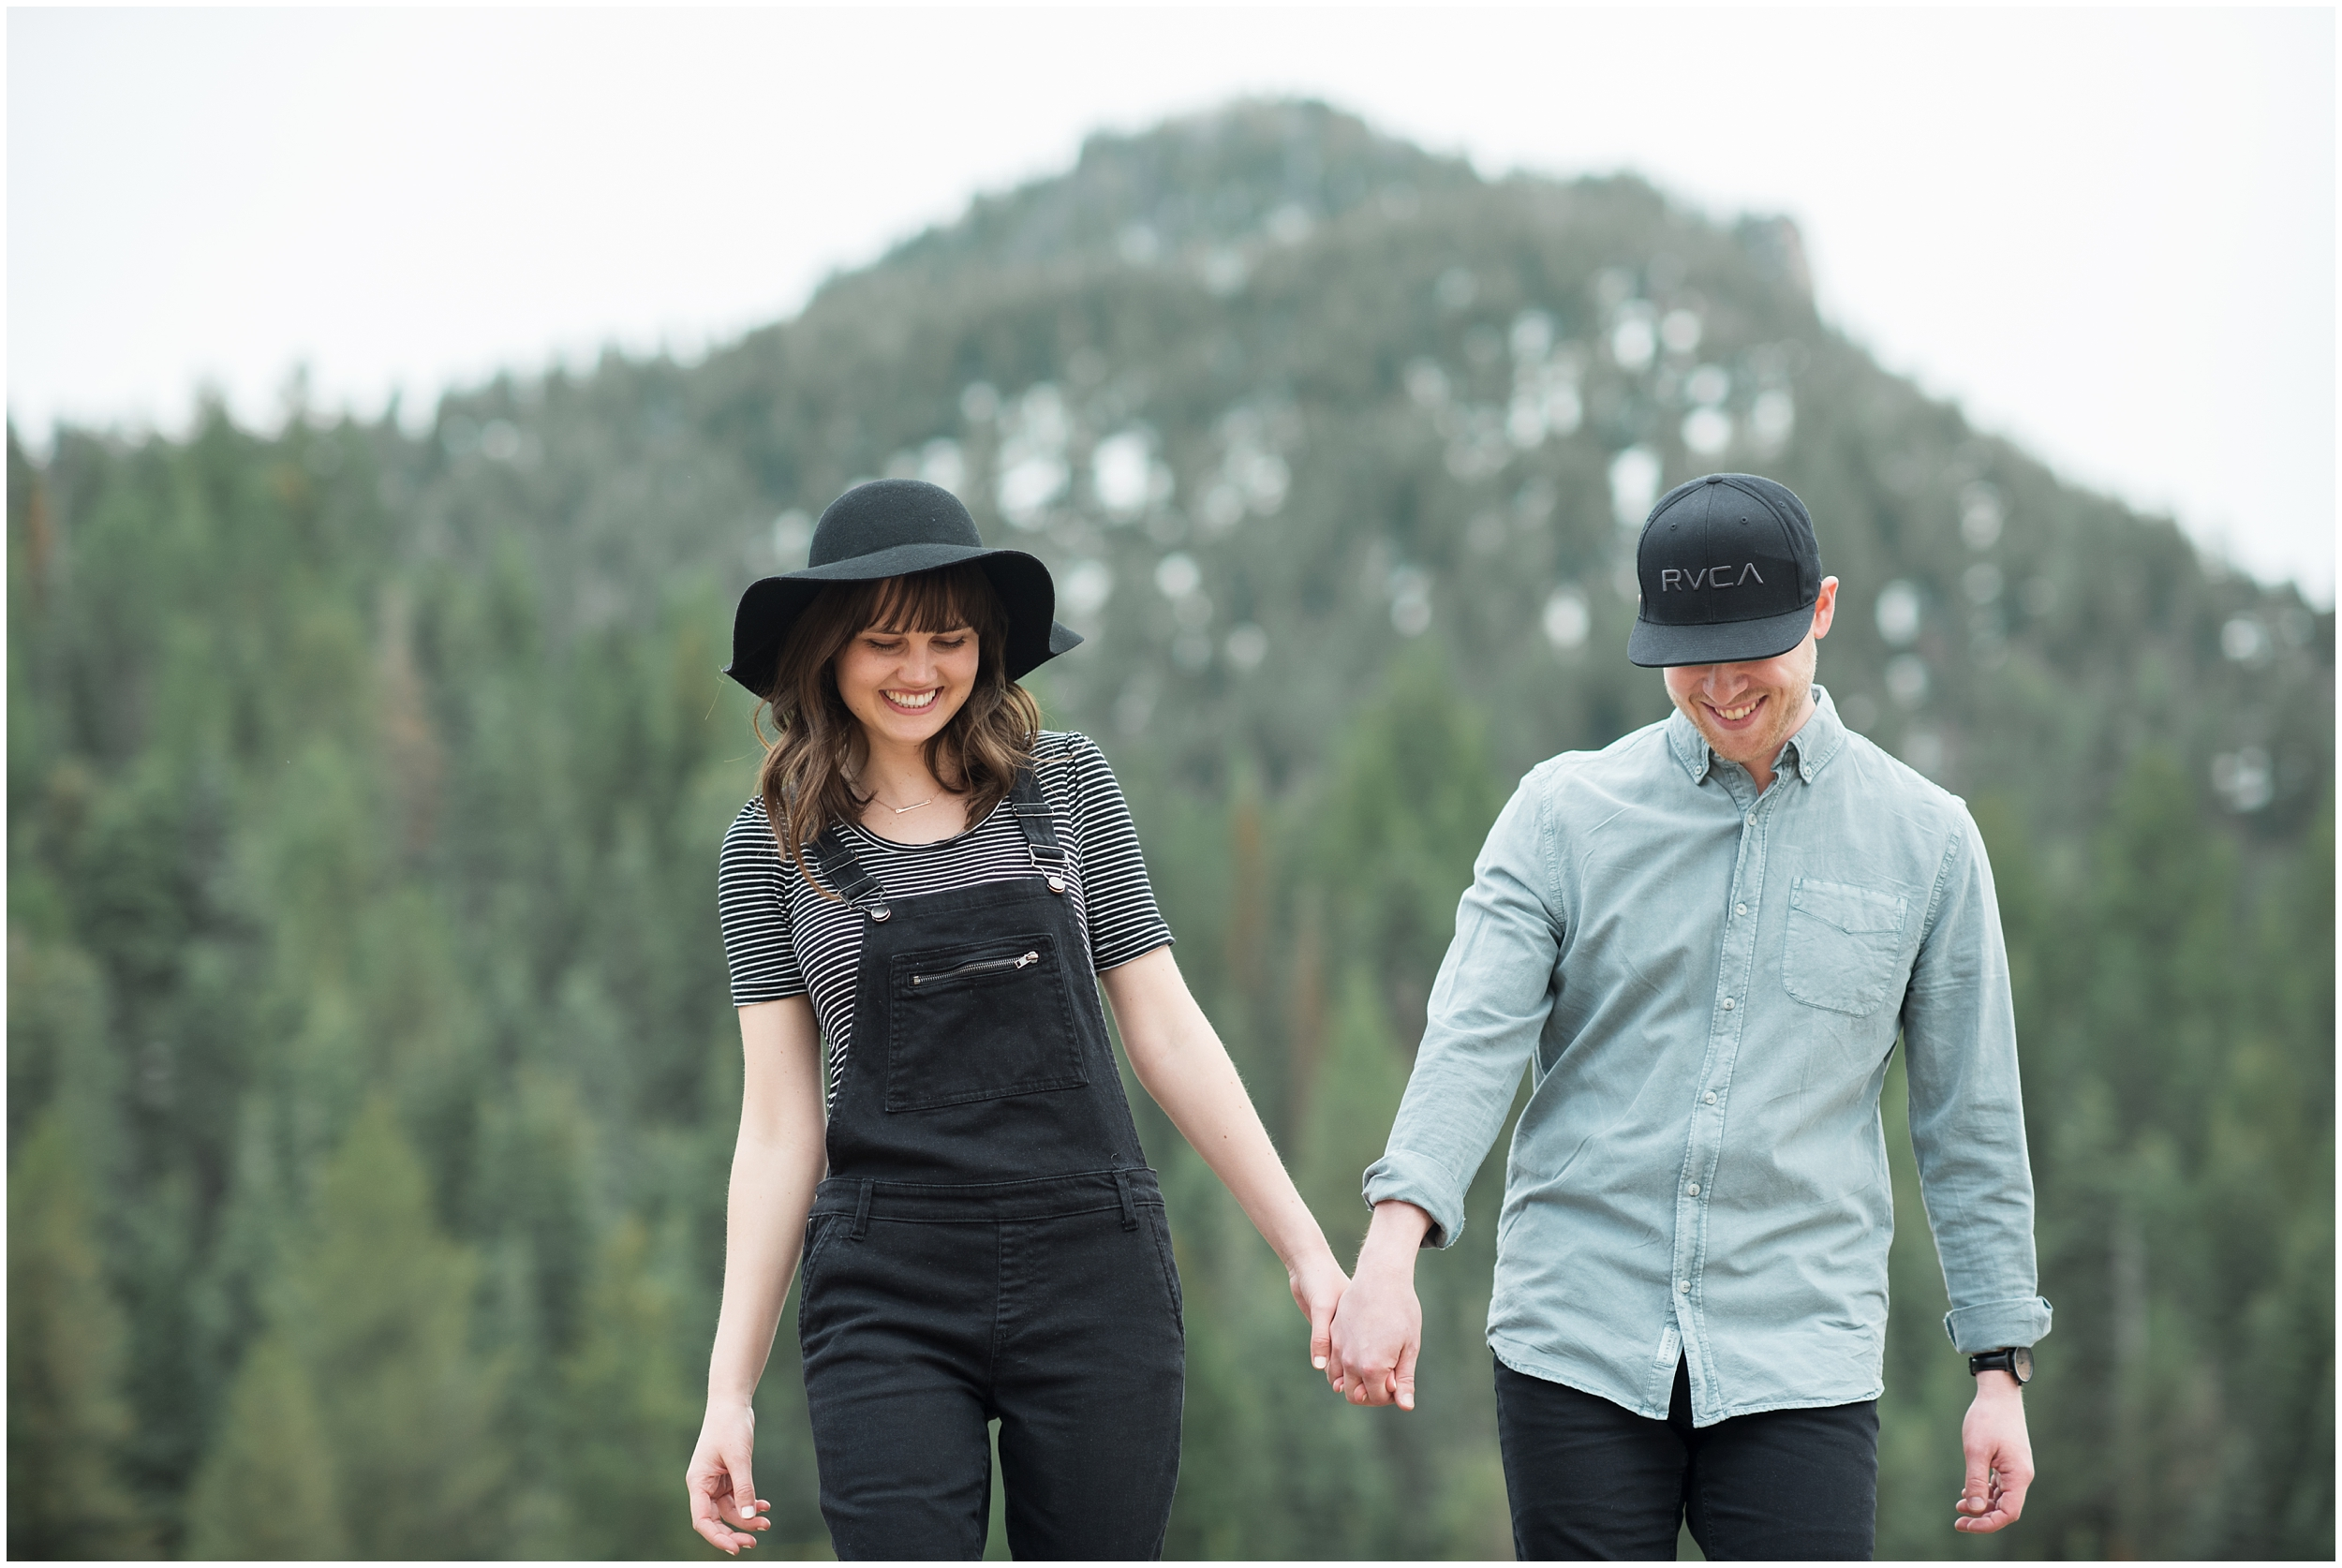 Mountainside engagements, red rock engagements, forest engagements, engagements in hats, field engagements, Utah senior photos, orchard senior photos, photographers in Utah, Utah family photographer, family photos Utah, Kristina Curtis photography, Kristina Curtis Photographer, www.kristinacurtisphotography.com